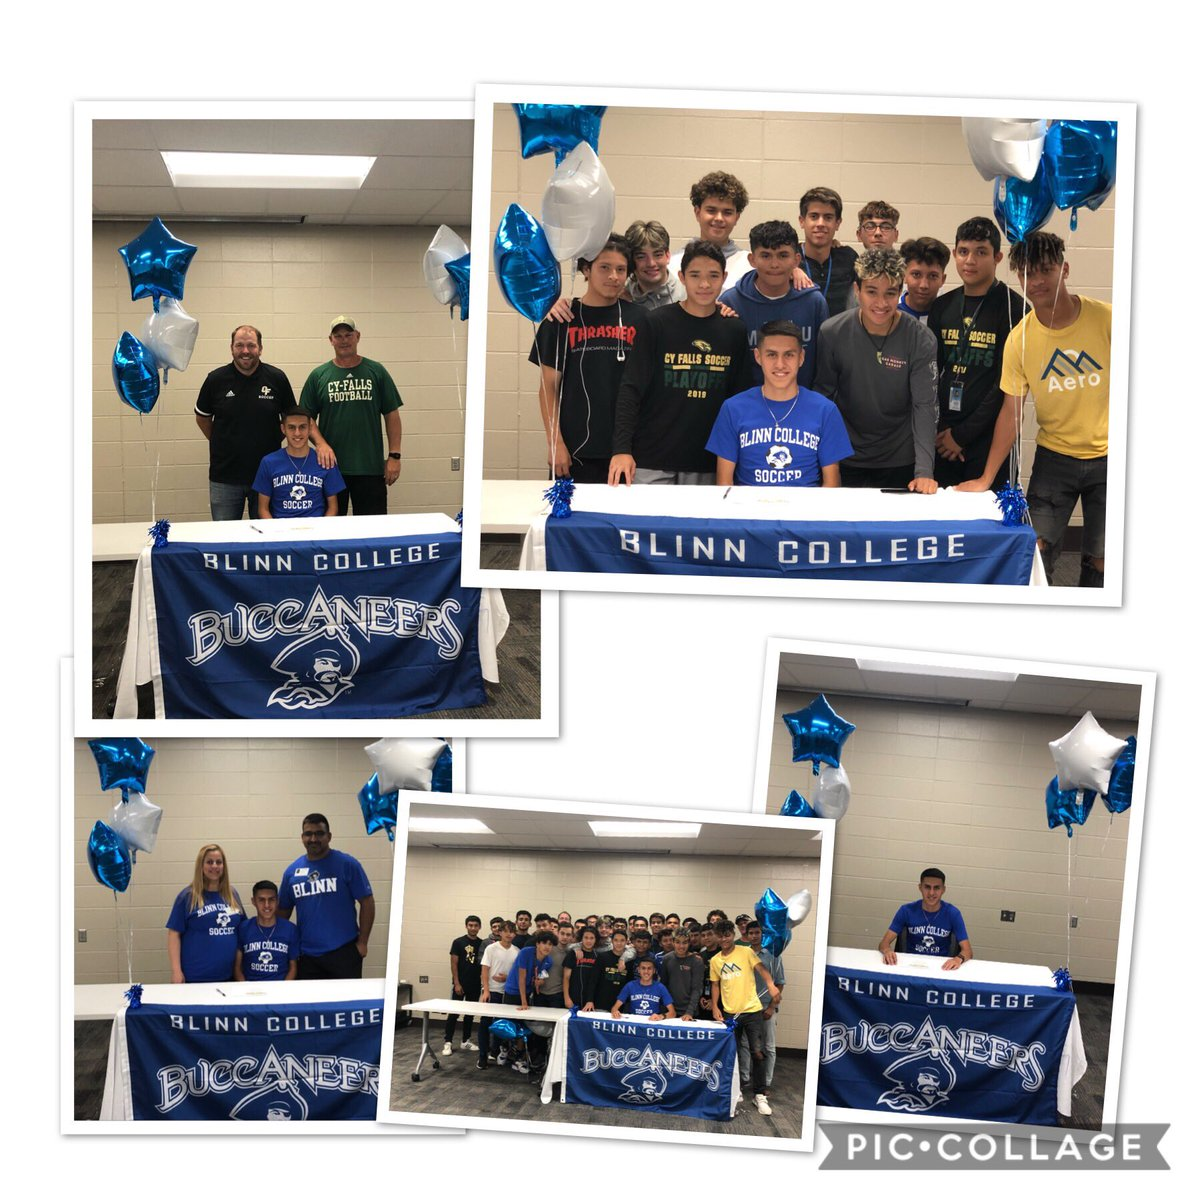 b7a88ef53 ... student athlete signing their college letter of intent. Congratulations  Oscar DeSantiago for signing with Blinn College!pic.twitter.com/ndhmmjYi5g